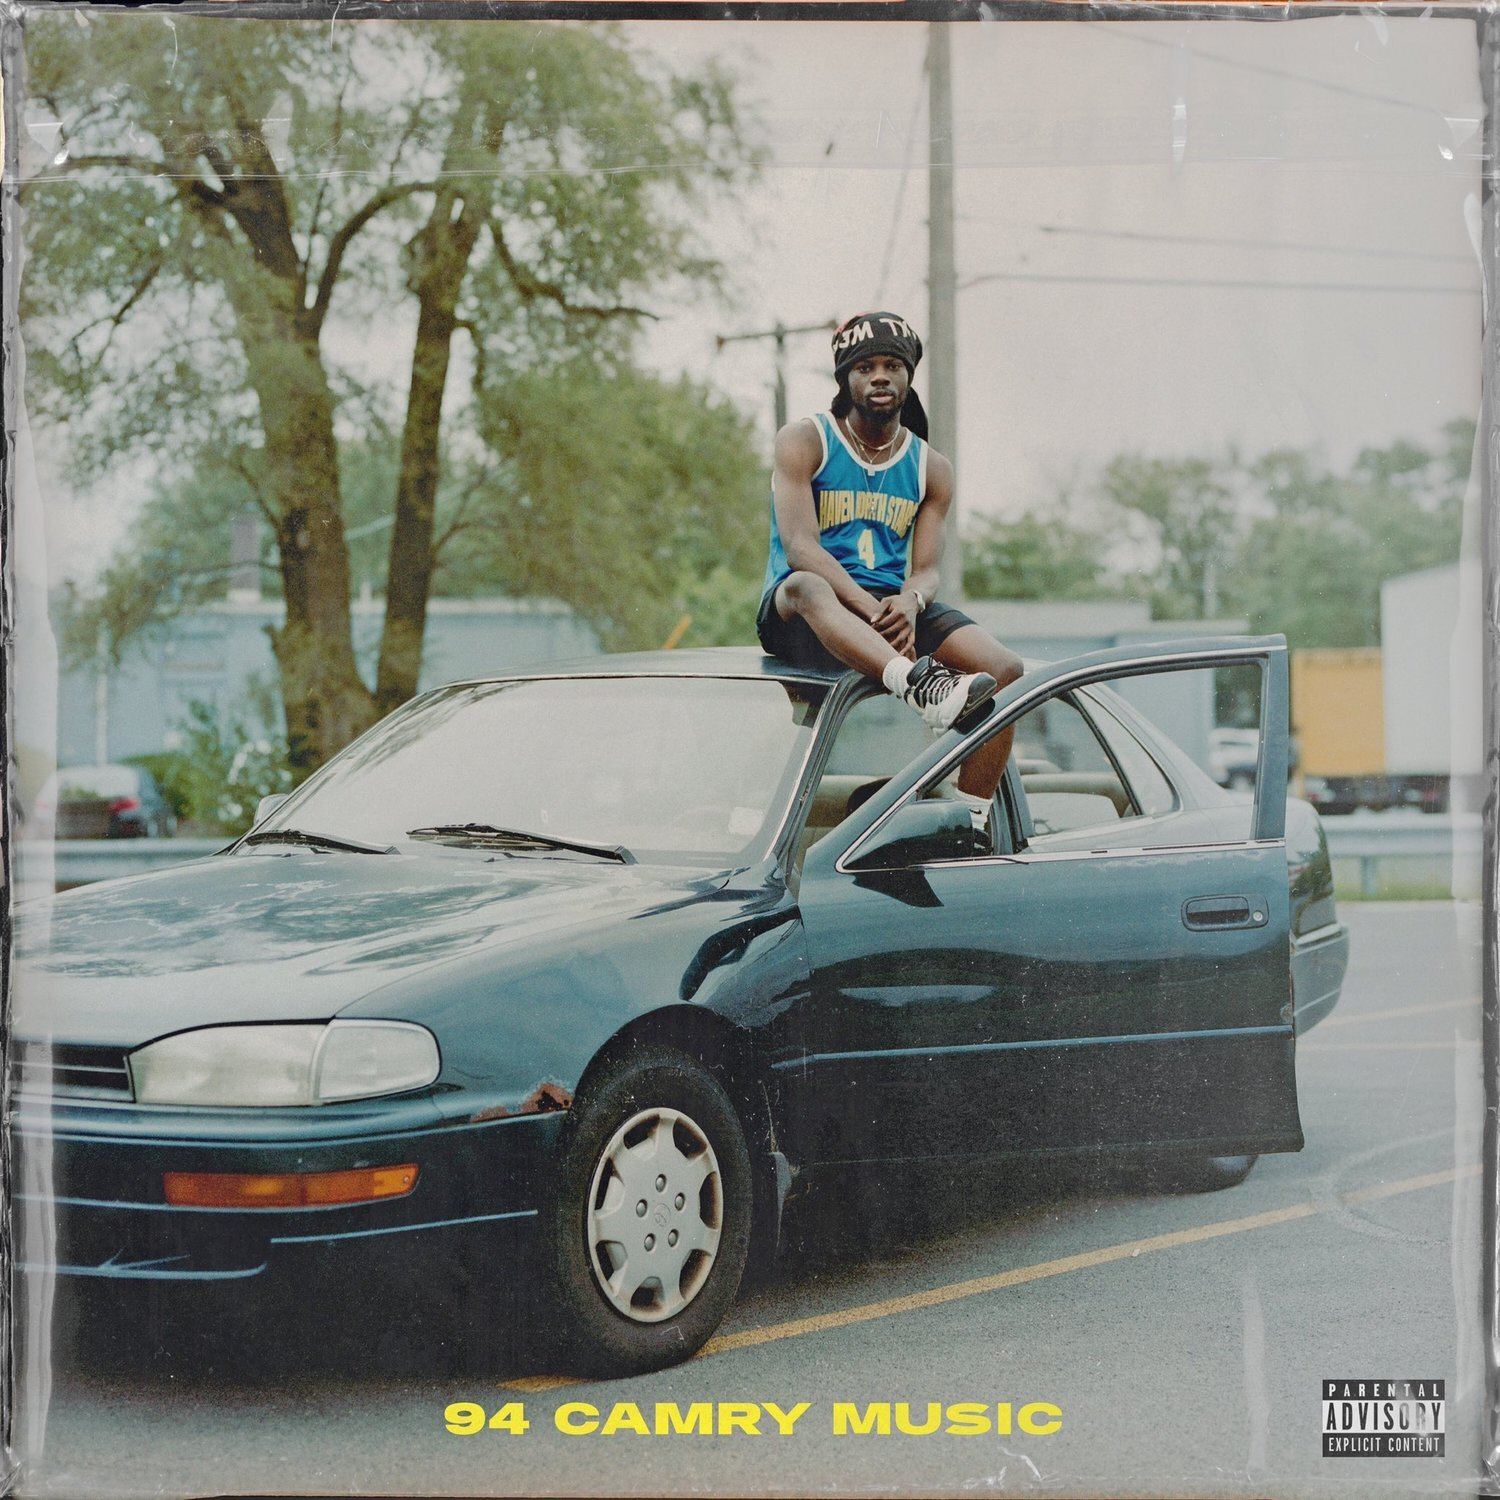 Taking The Passenger Seat in Femdot's '94 Camry - In '94 Camry Music,' Femdot lets us in the passenger seat of his old whip and shares the adventures and lessons learned in it.